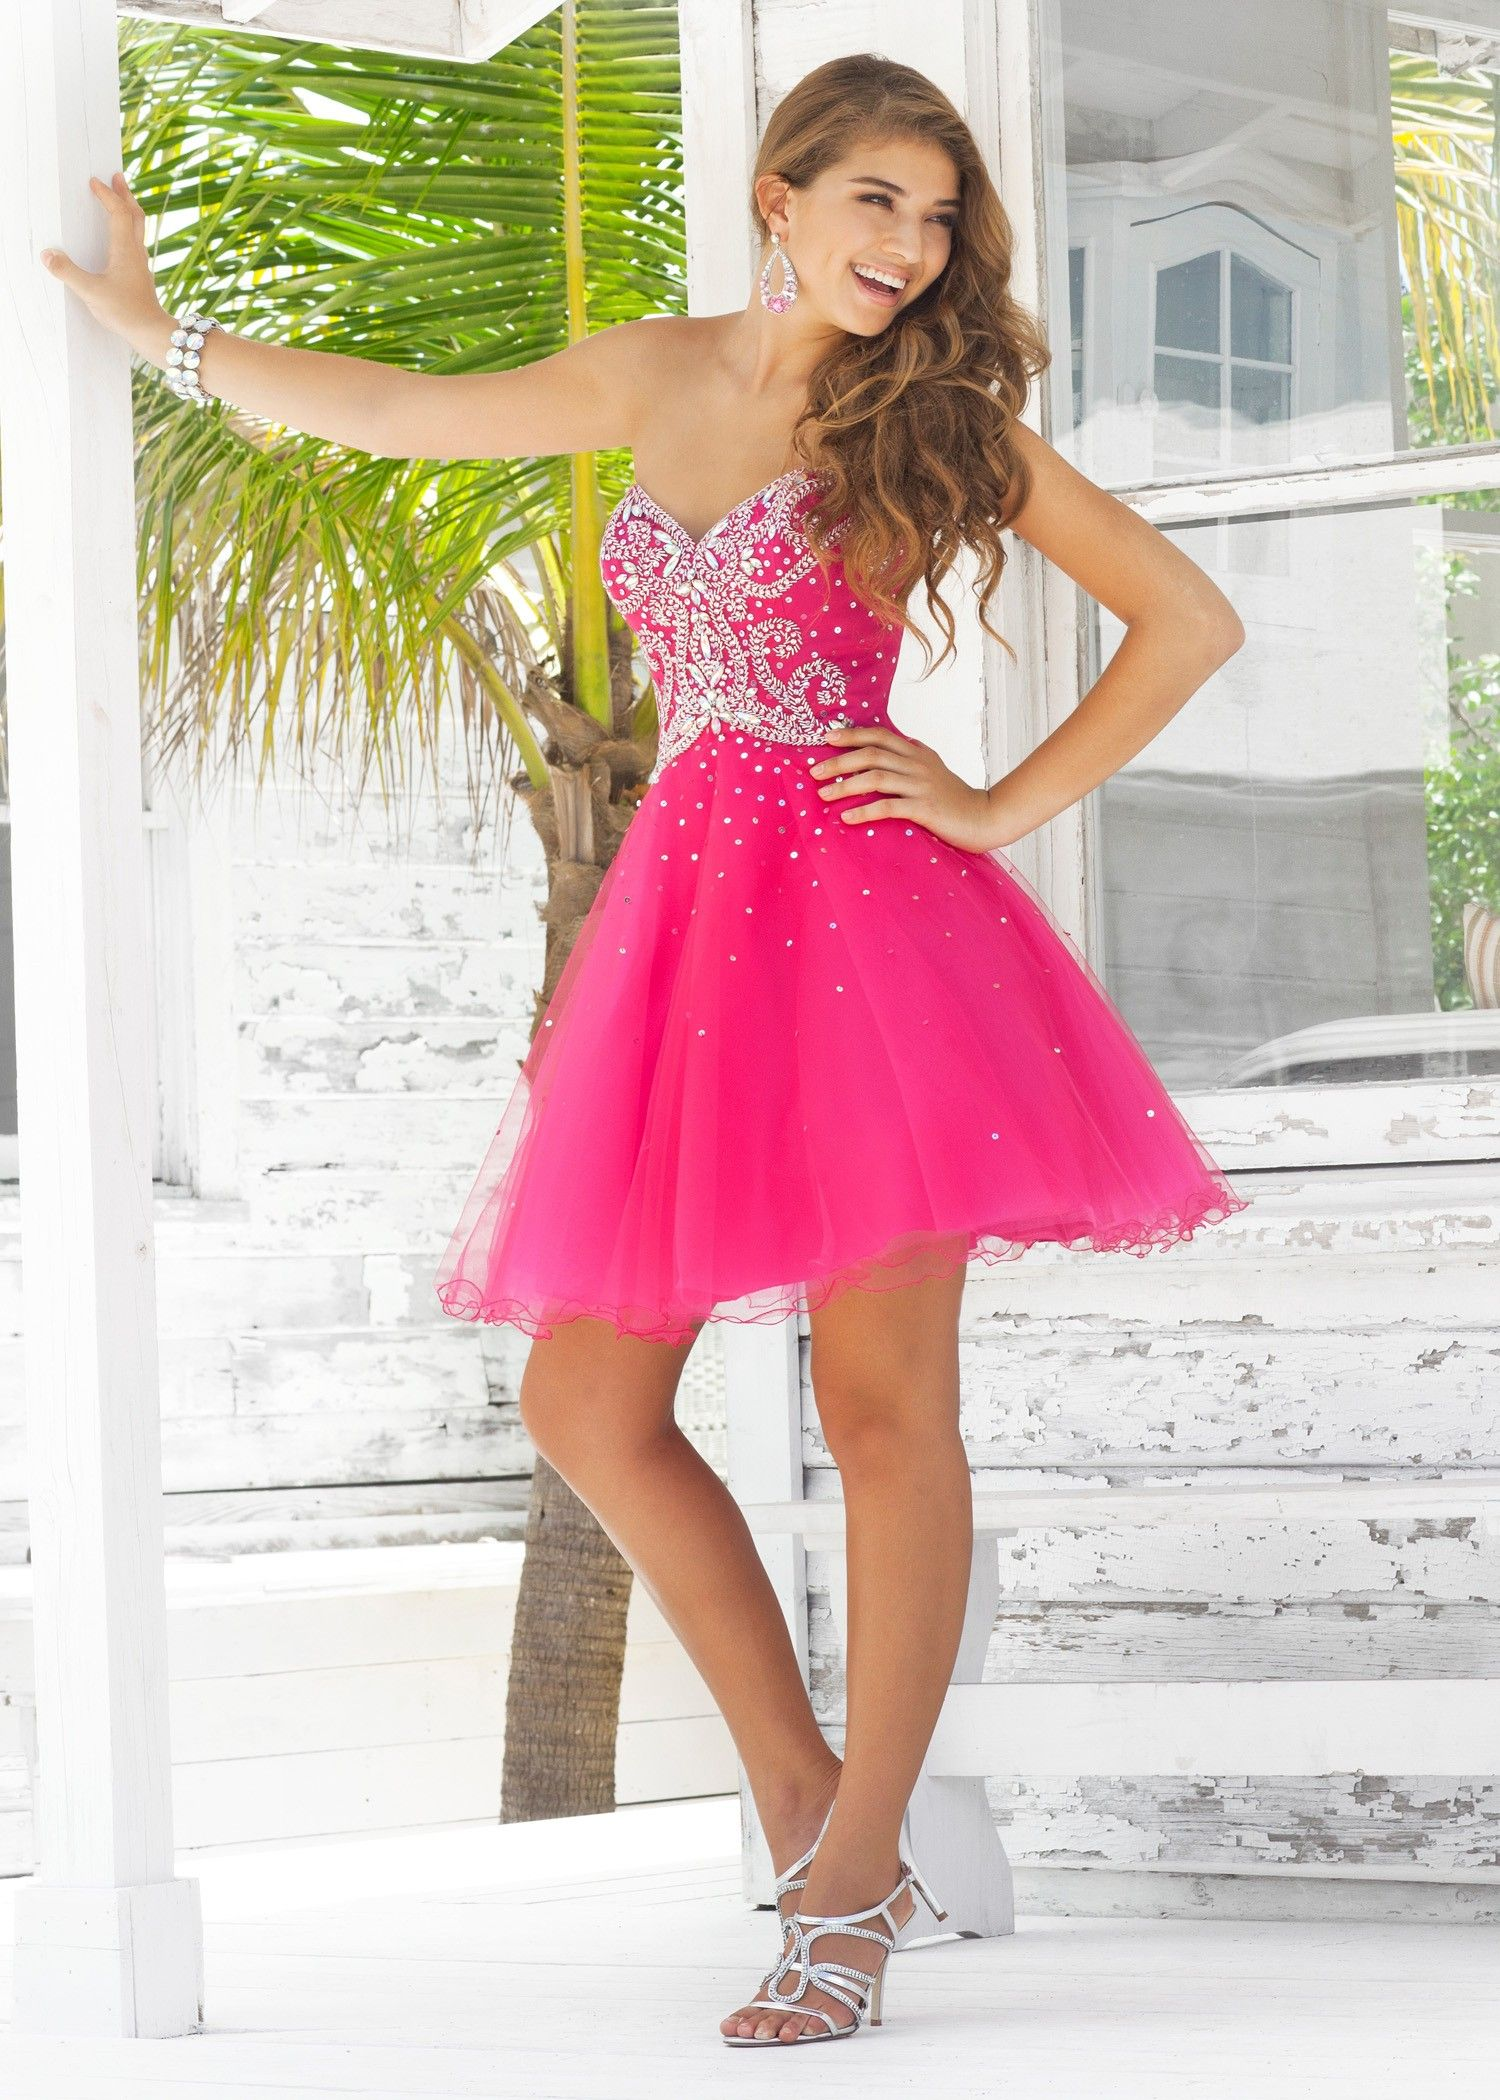 Pin by kaylee bailey on promhomecoming pinterest blush prom